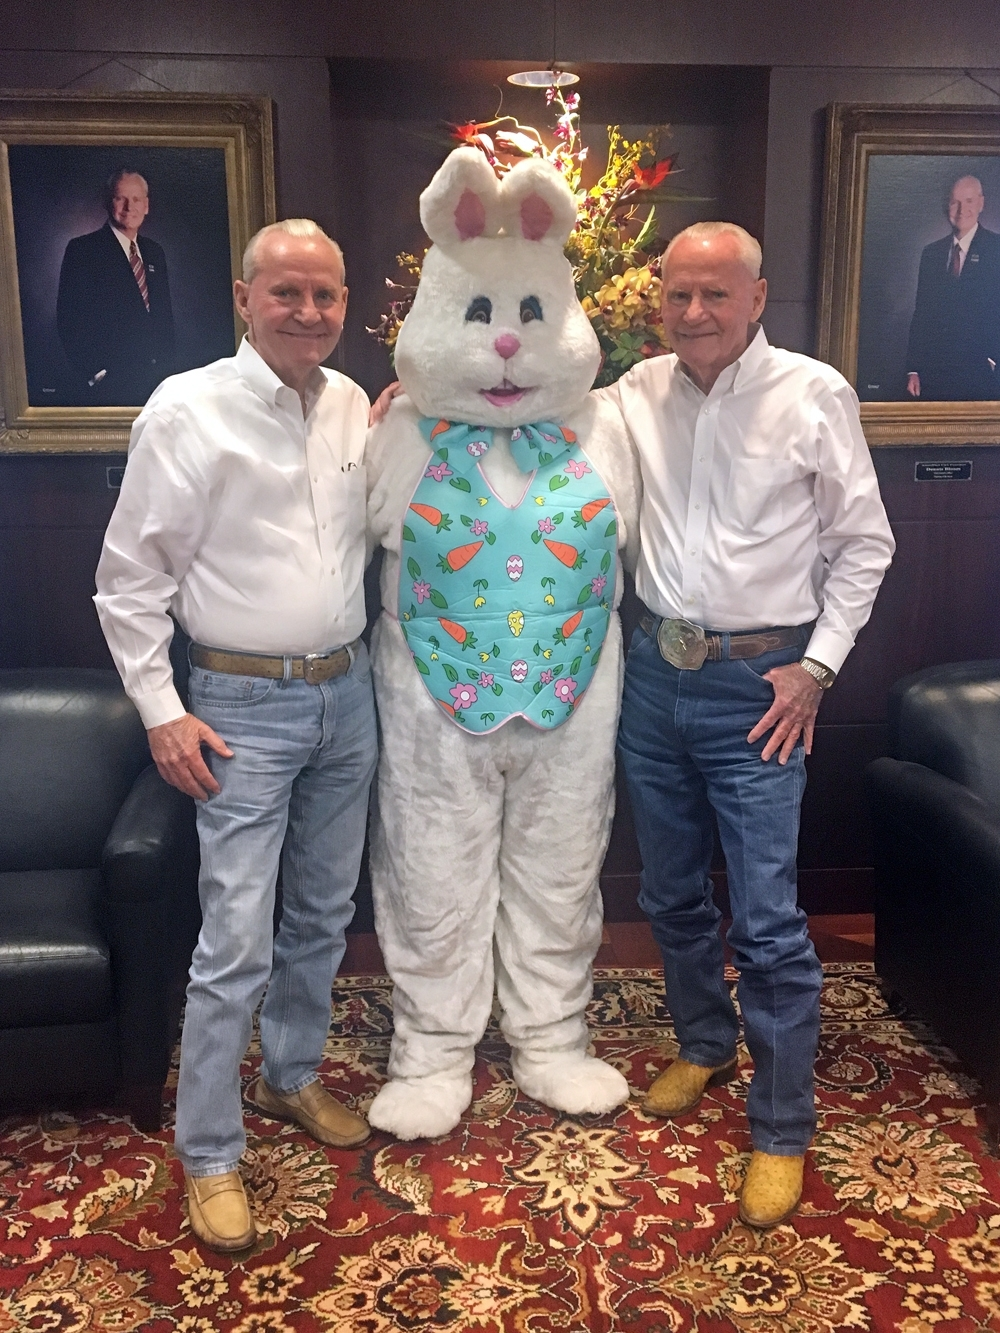 Dennis and Daniel and the Easter Bunny